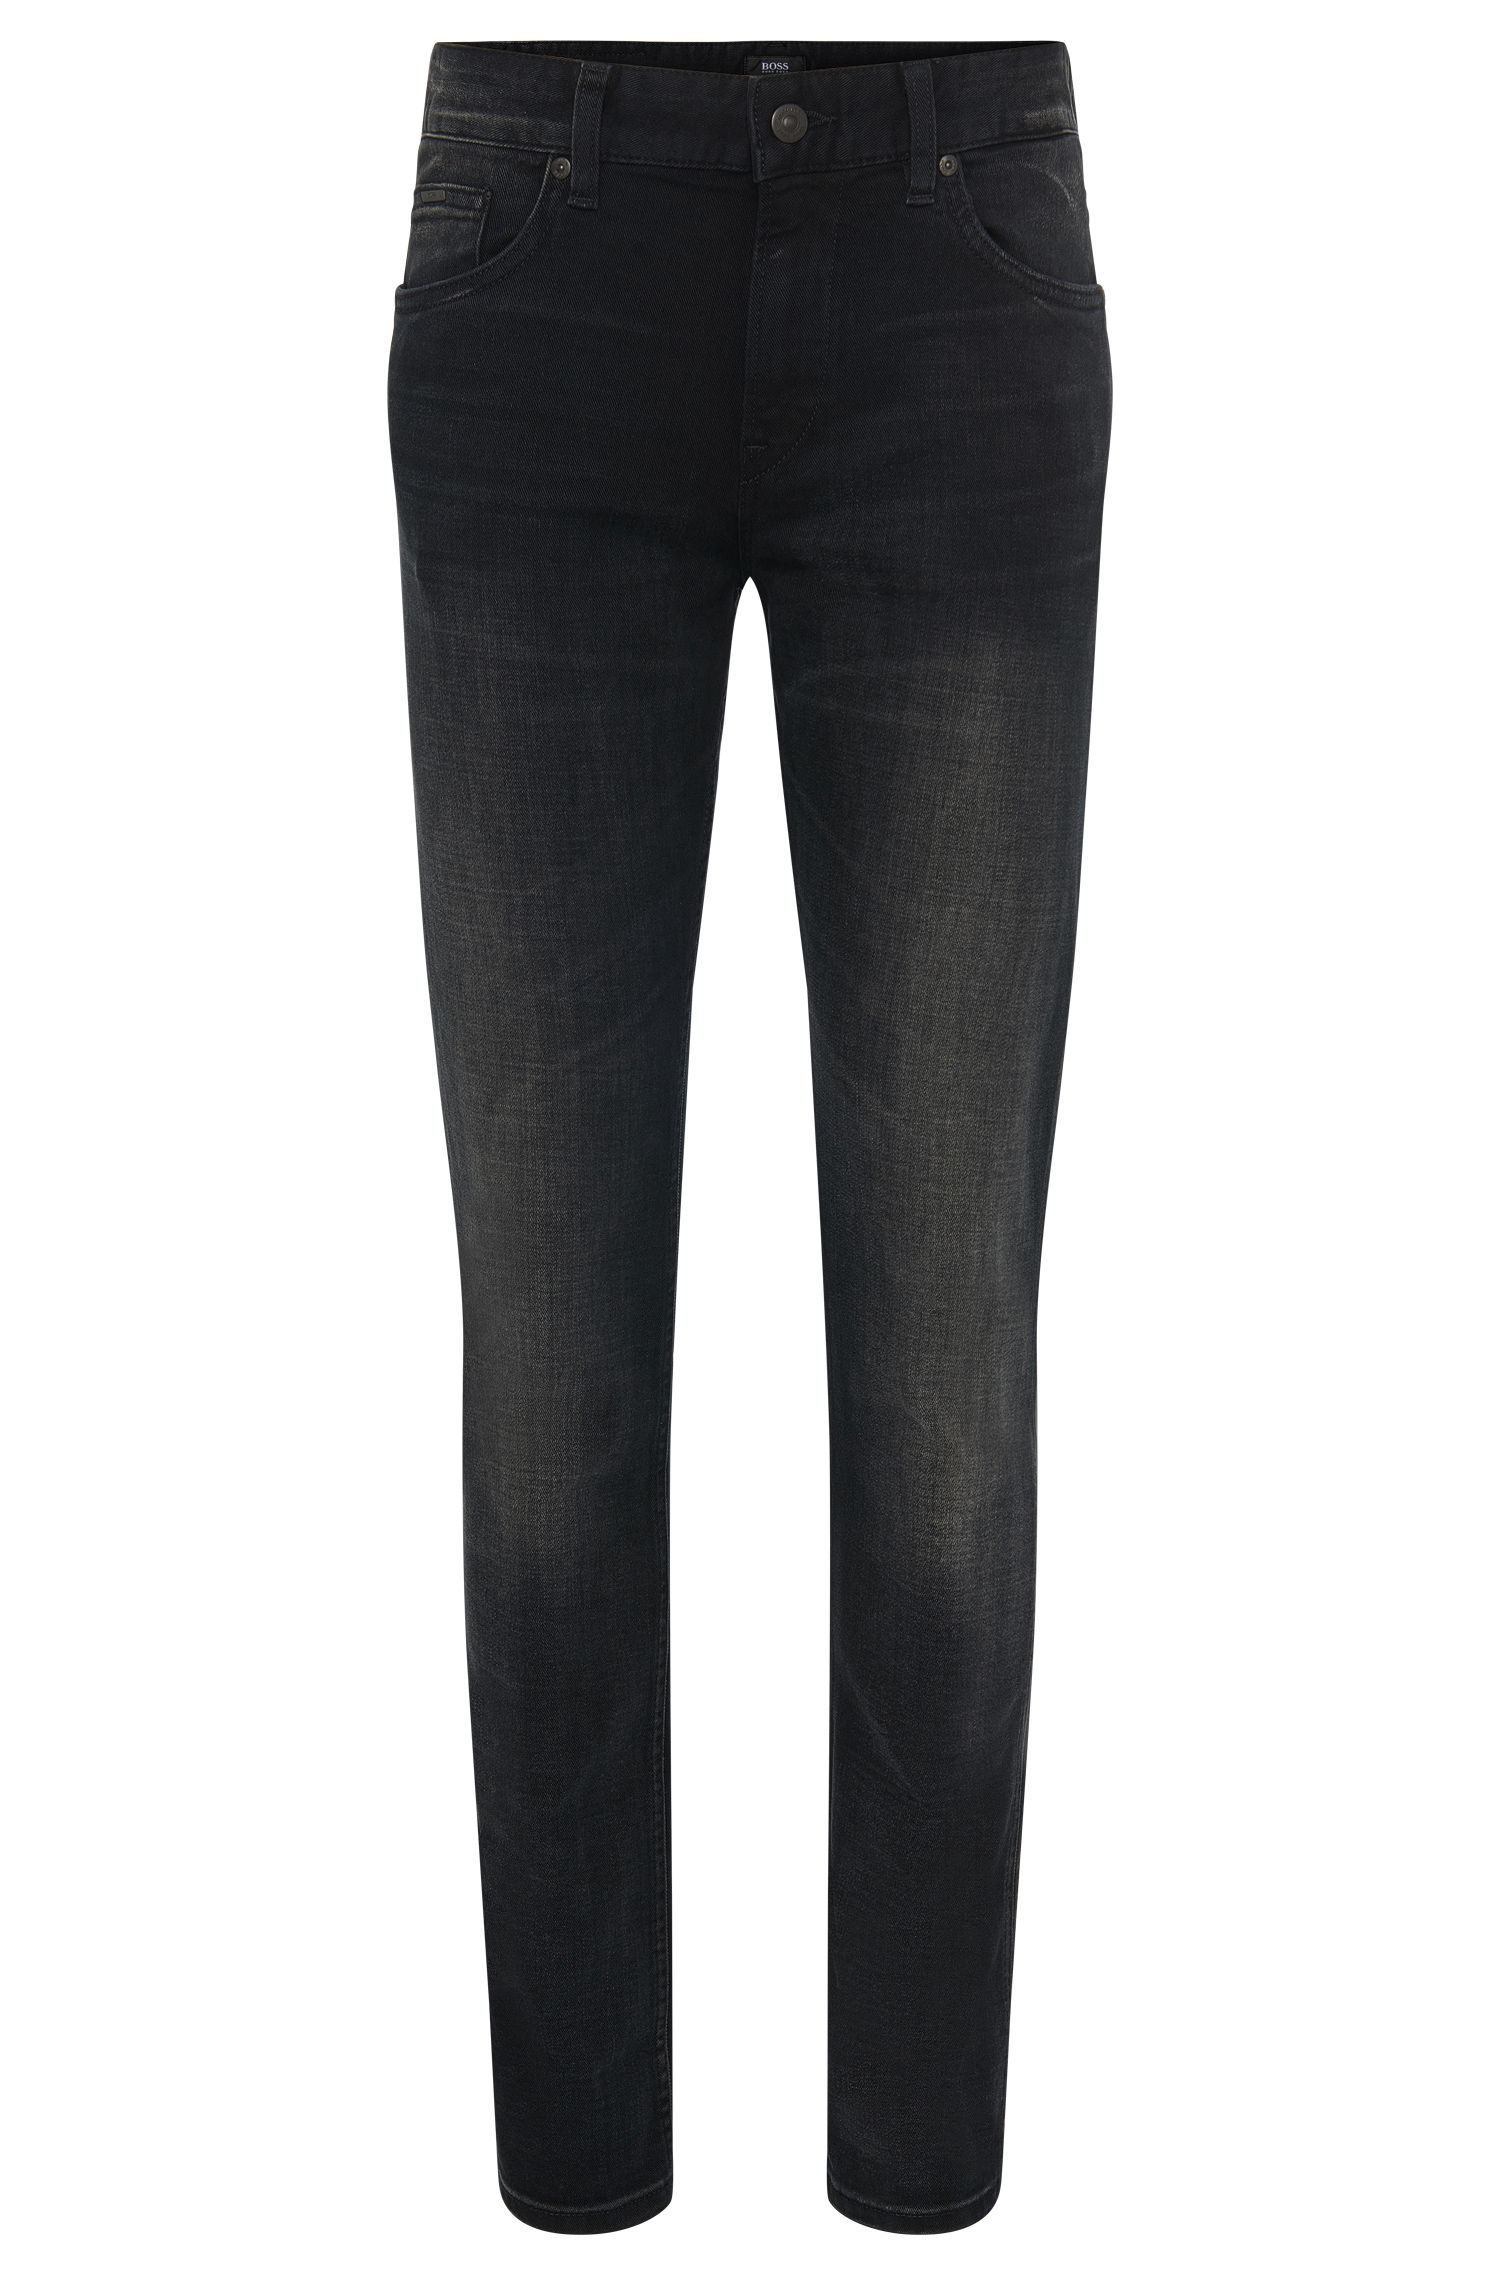 'Delaware' | Slim Fit, 10 oz Stretch Cotton Blend Jeans